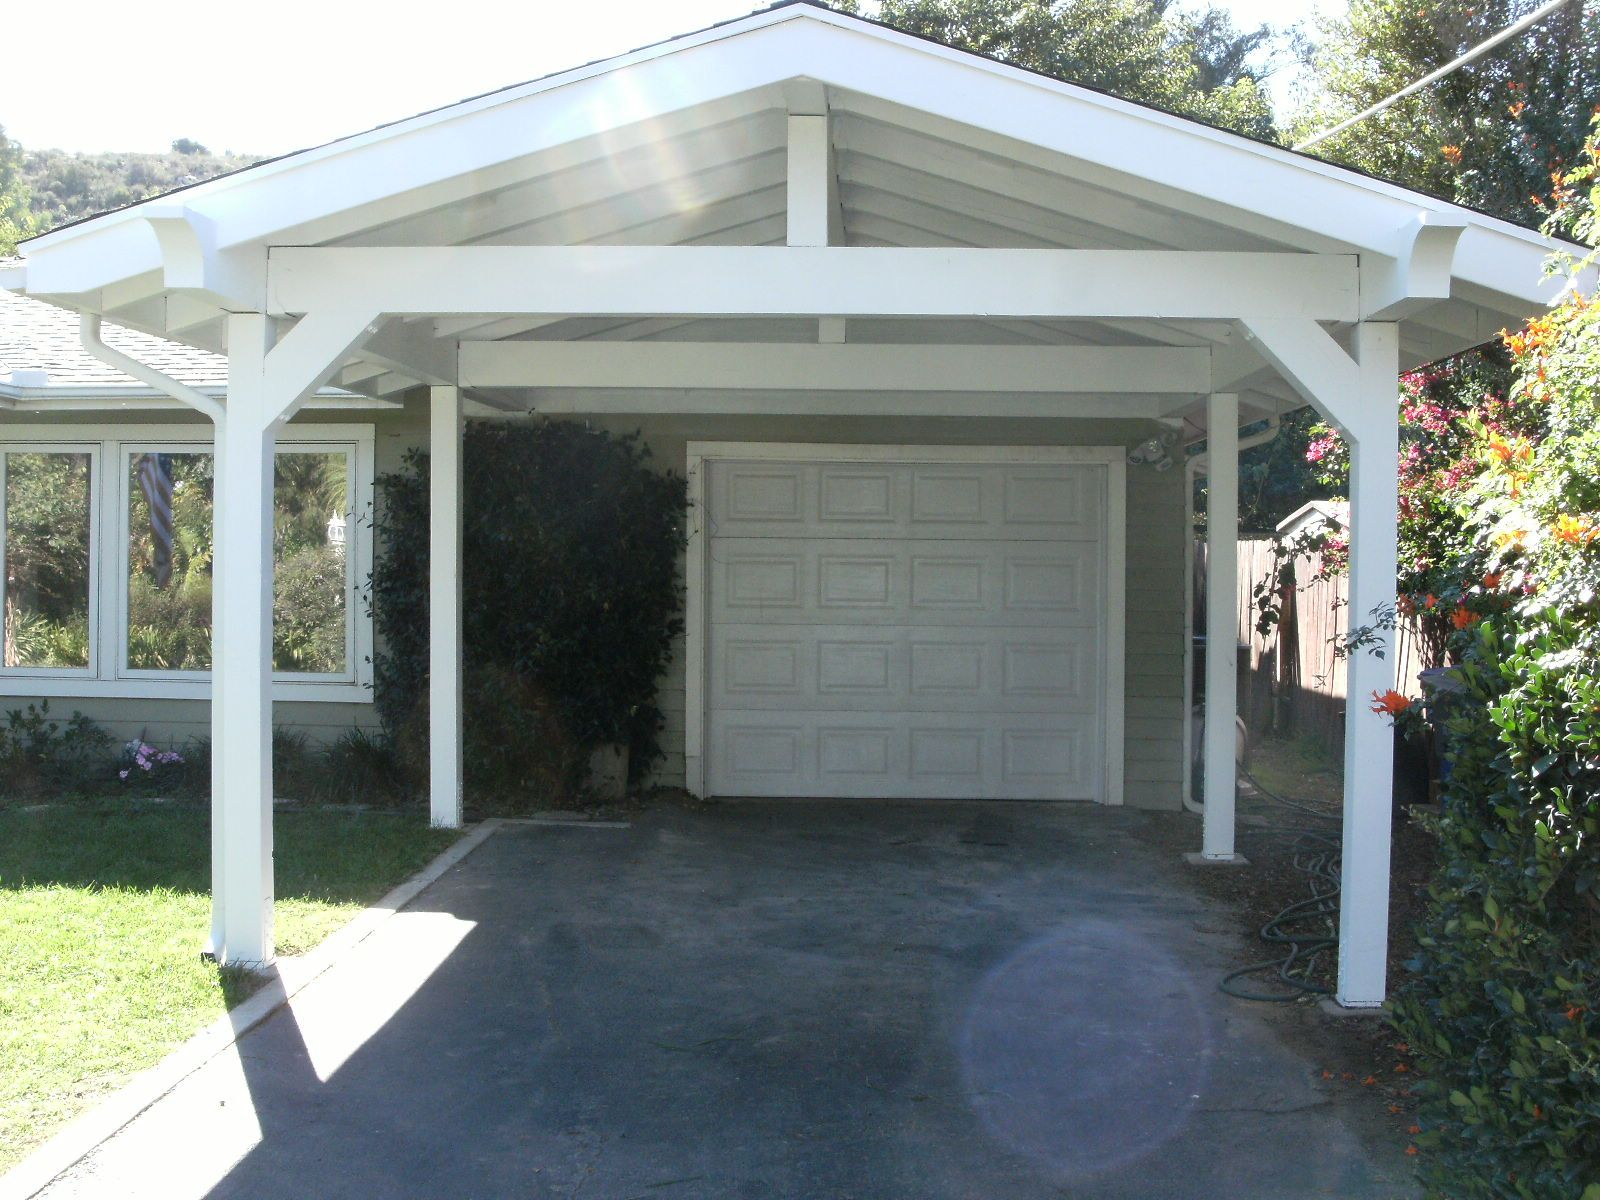 Design Carports Carport Designs Garages Carports Porches Decks Custom